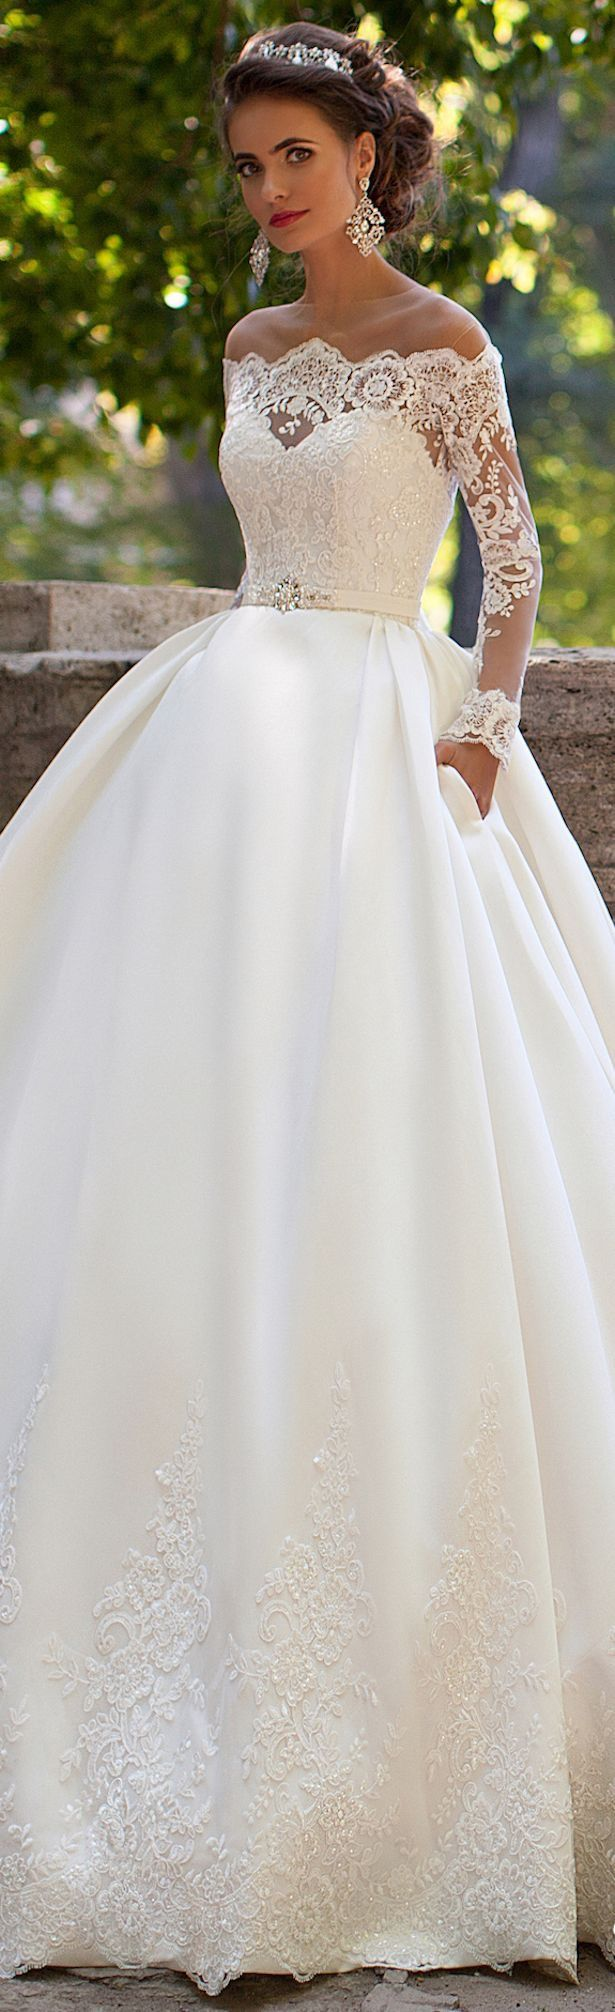 For when you want that fairytale princess look... | wedding ...